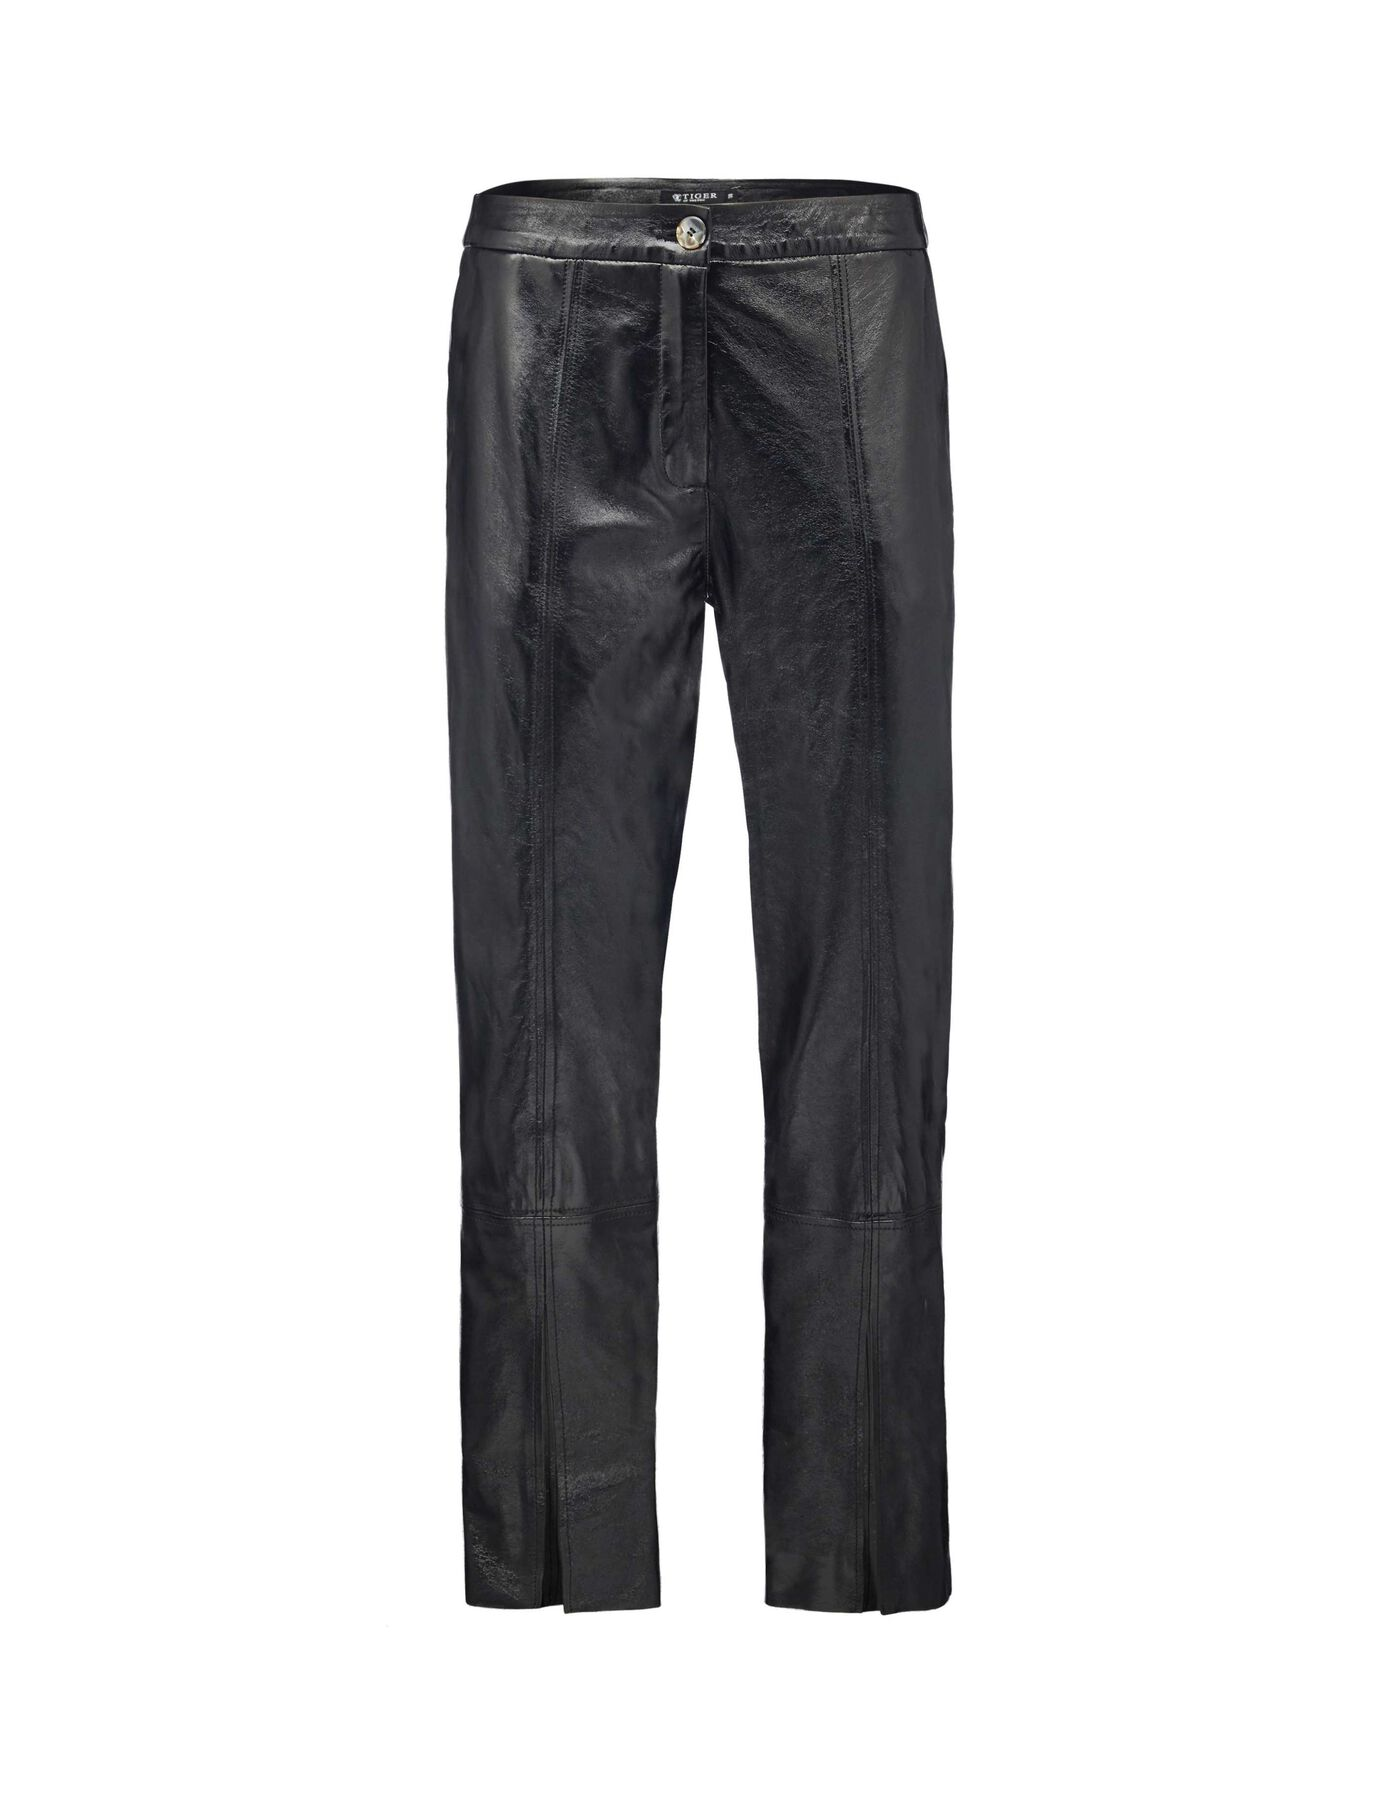 SOL TROUSERS in Midnight Black from Tiger of Sweden